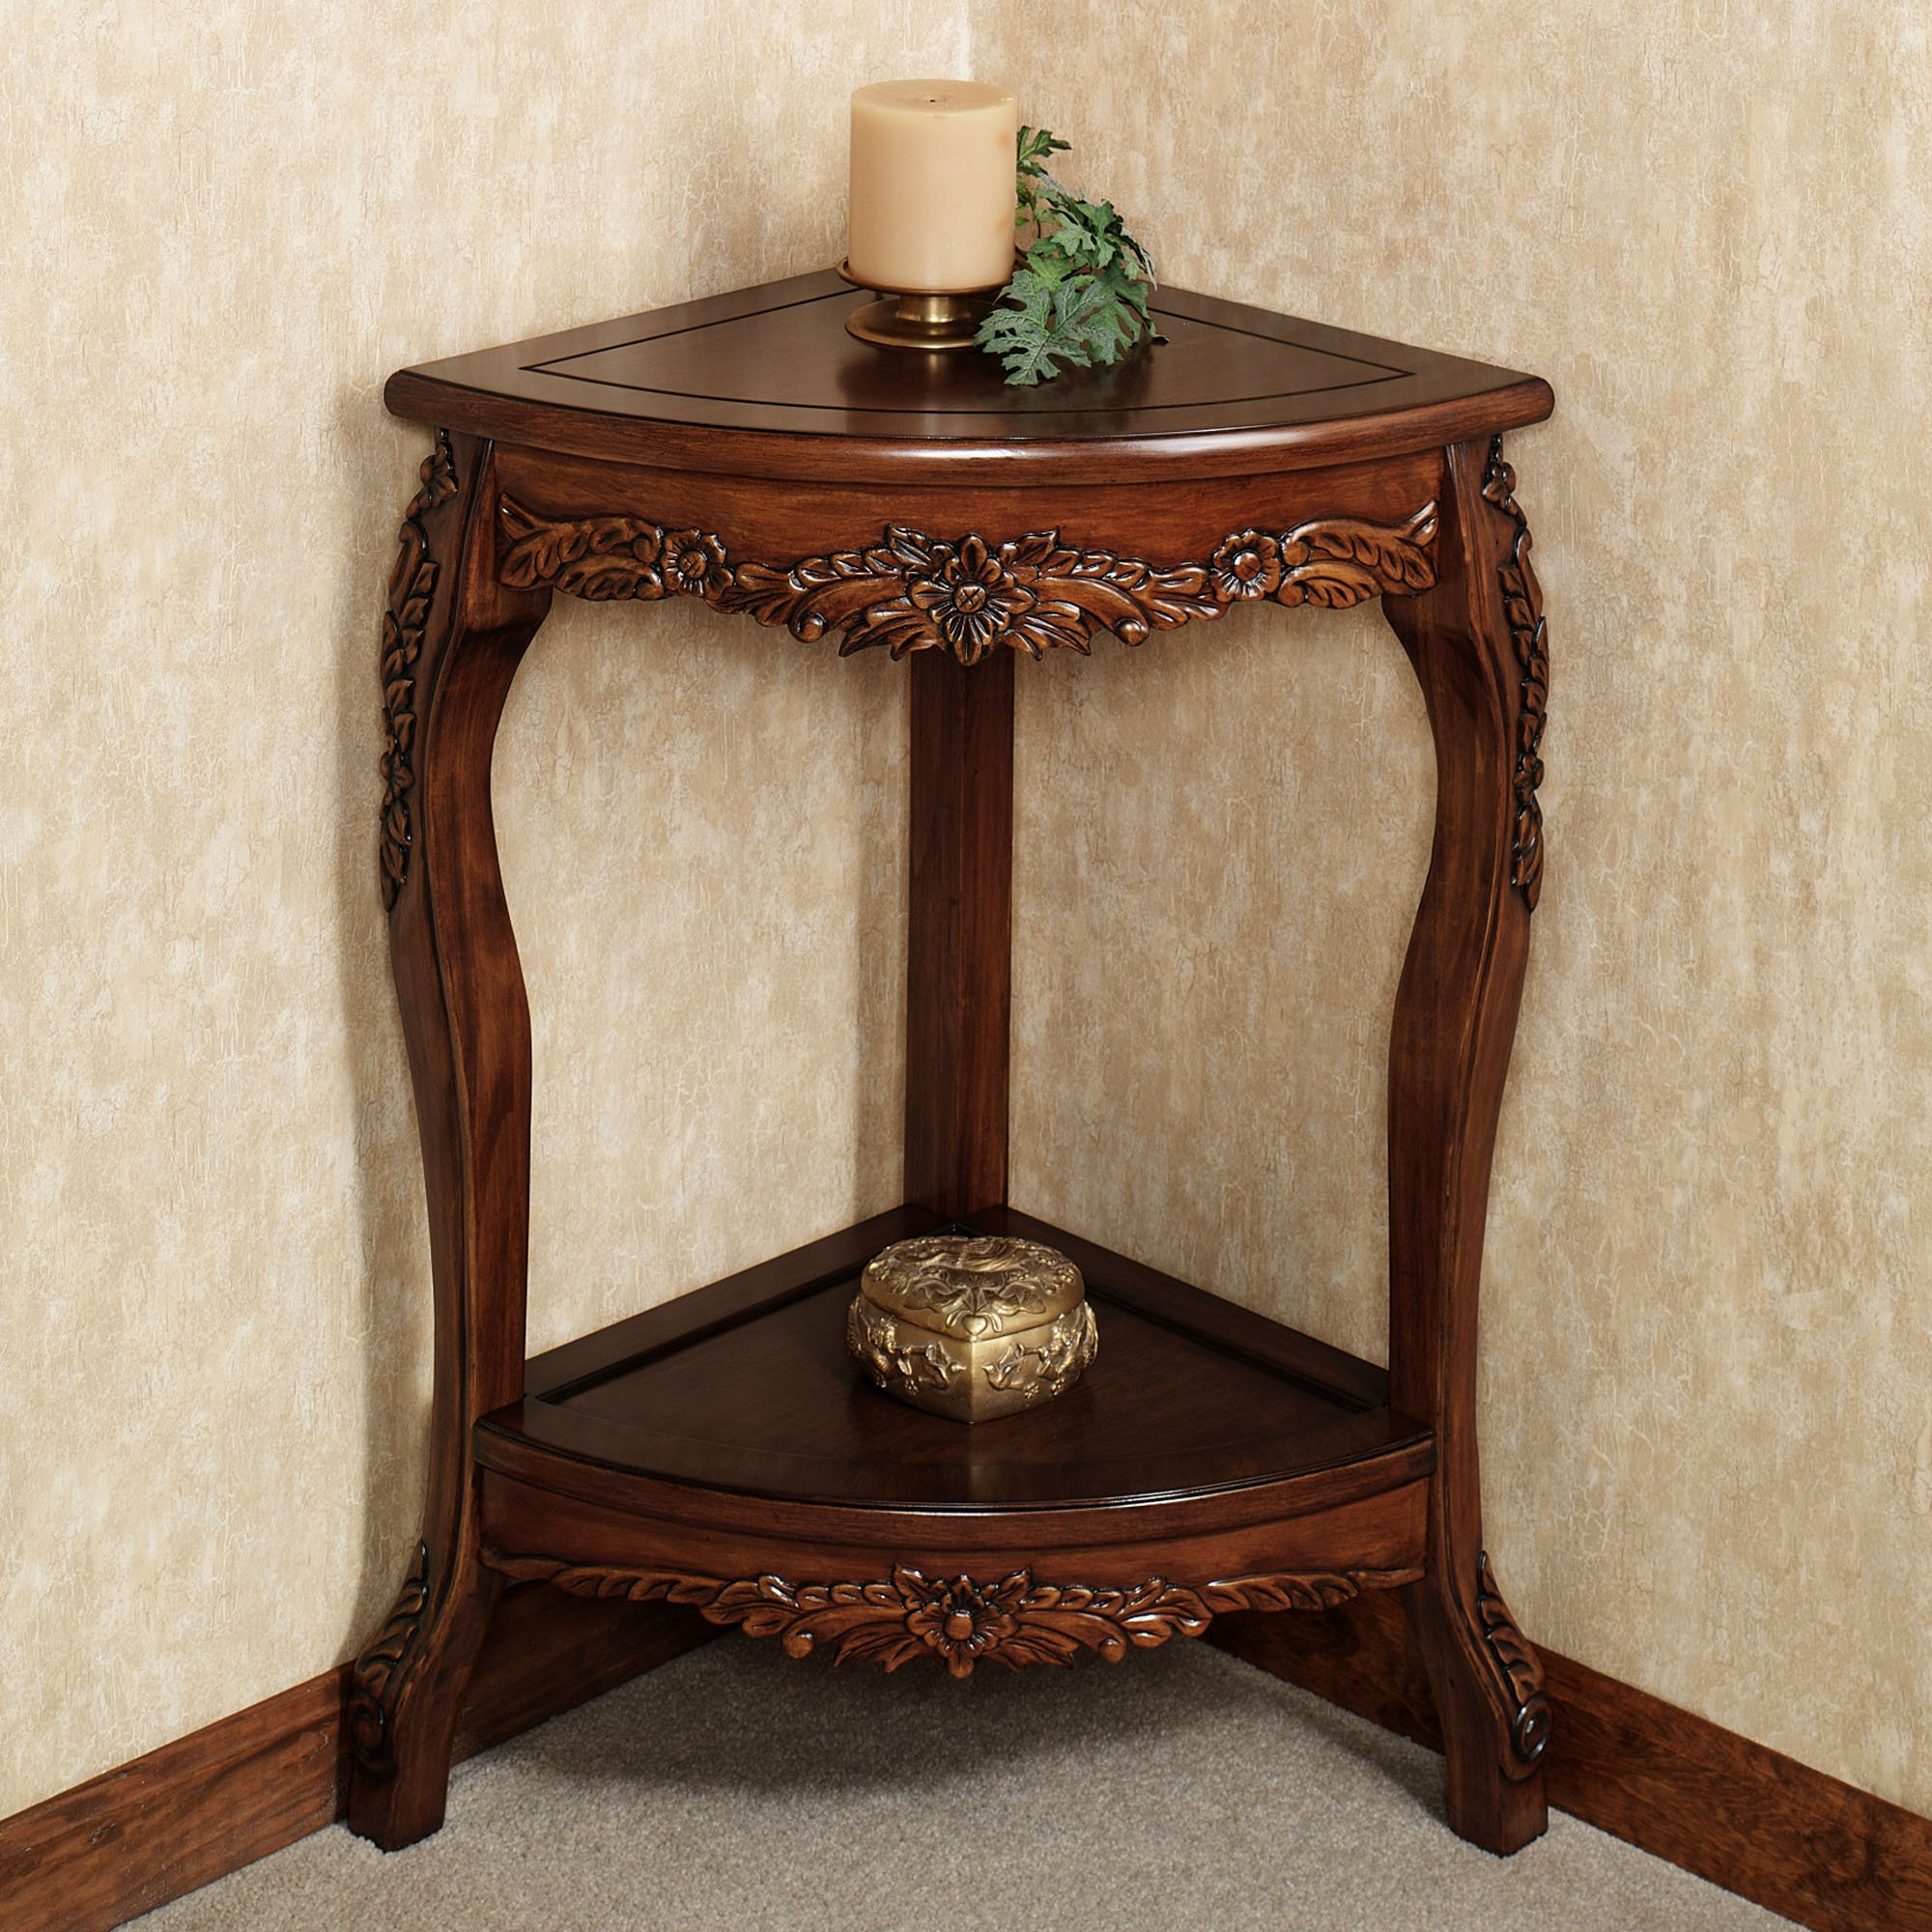 corner accent table white various options for tables drawers furniture with black side storage target copper marble dining room burgundy runner tama drum stool kohls wall clocks